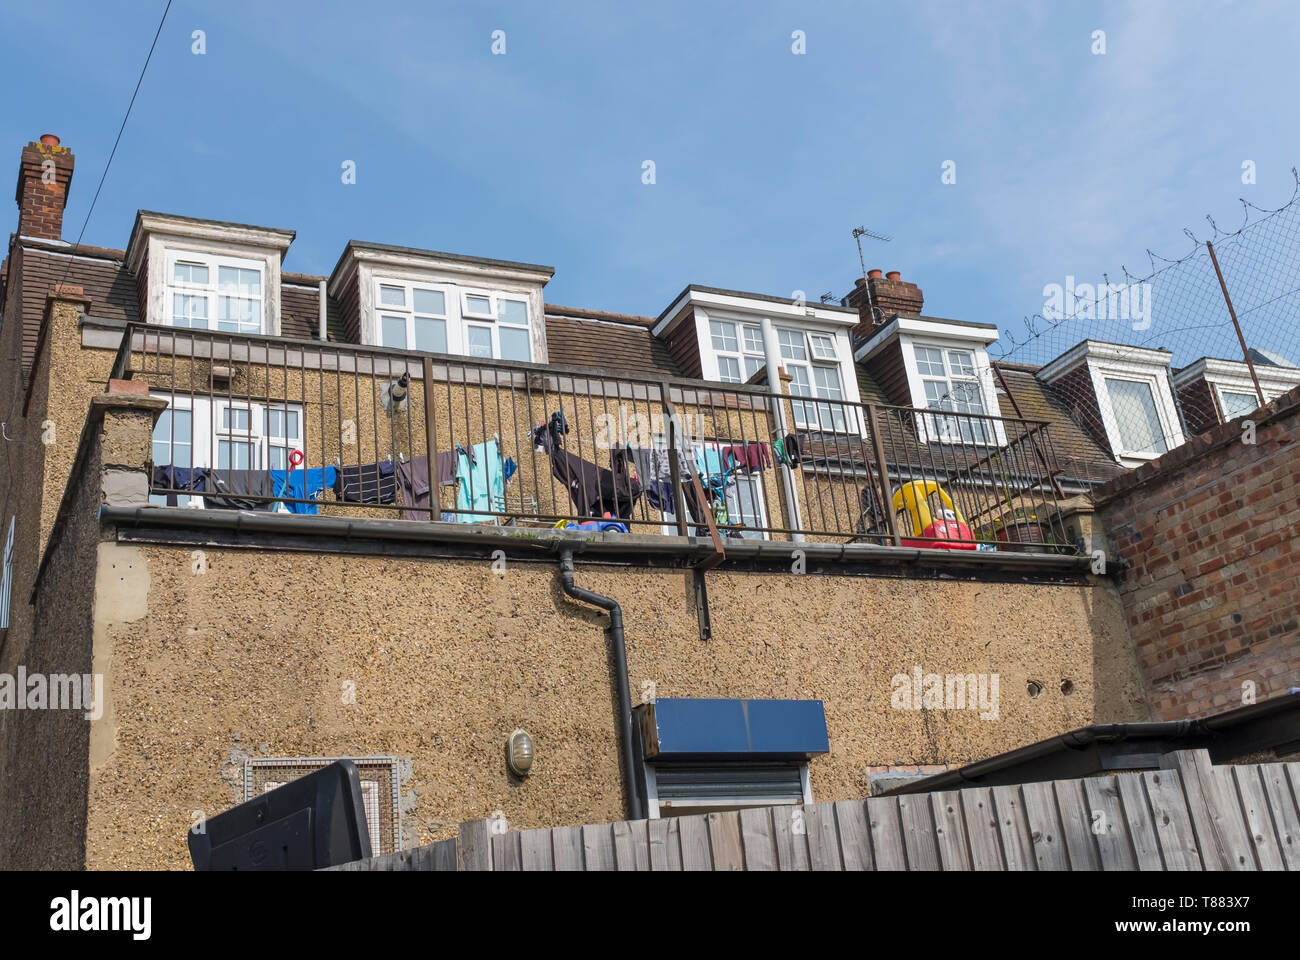 Washing hung out to dry on the rooftop terrace of a flat in city suburbs. - Stock Image